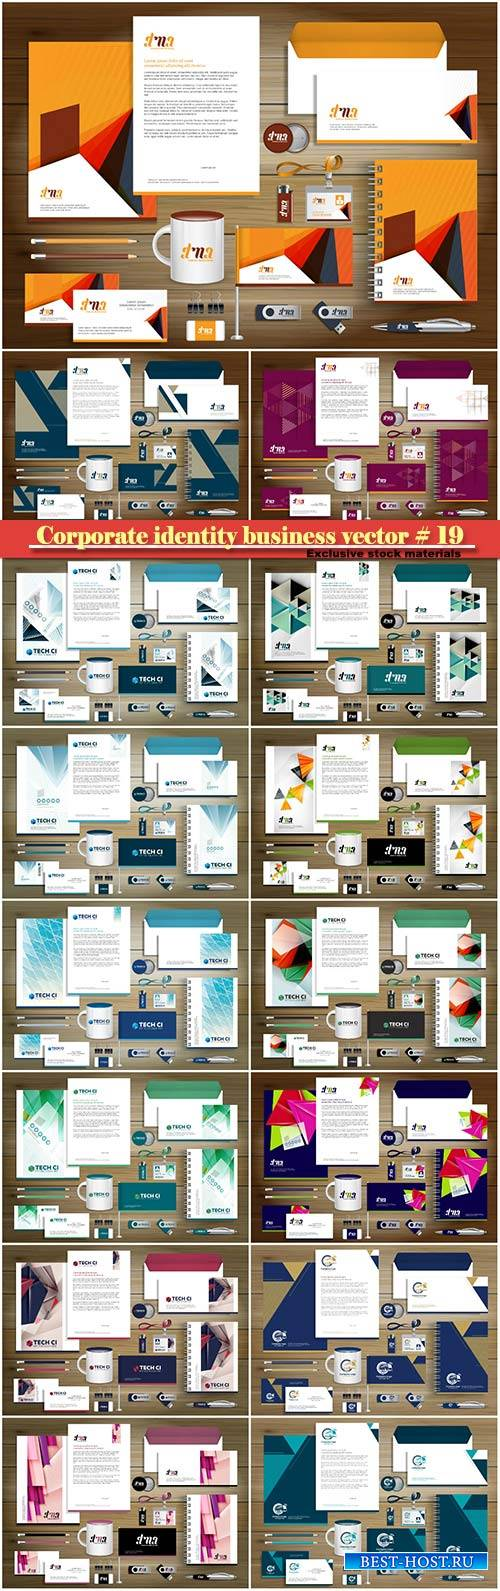 Corporate identity business vector # 19